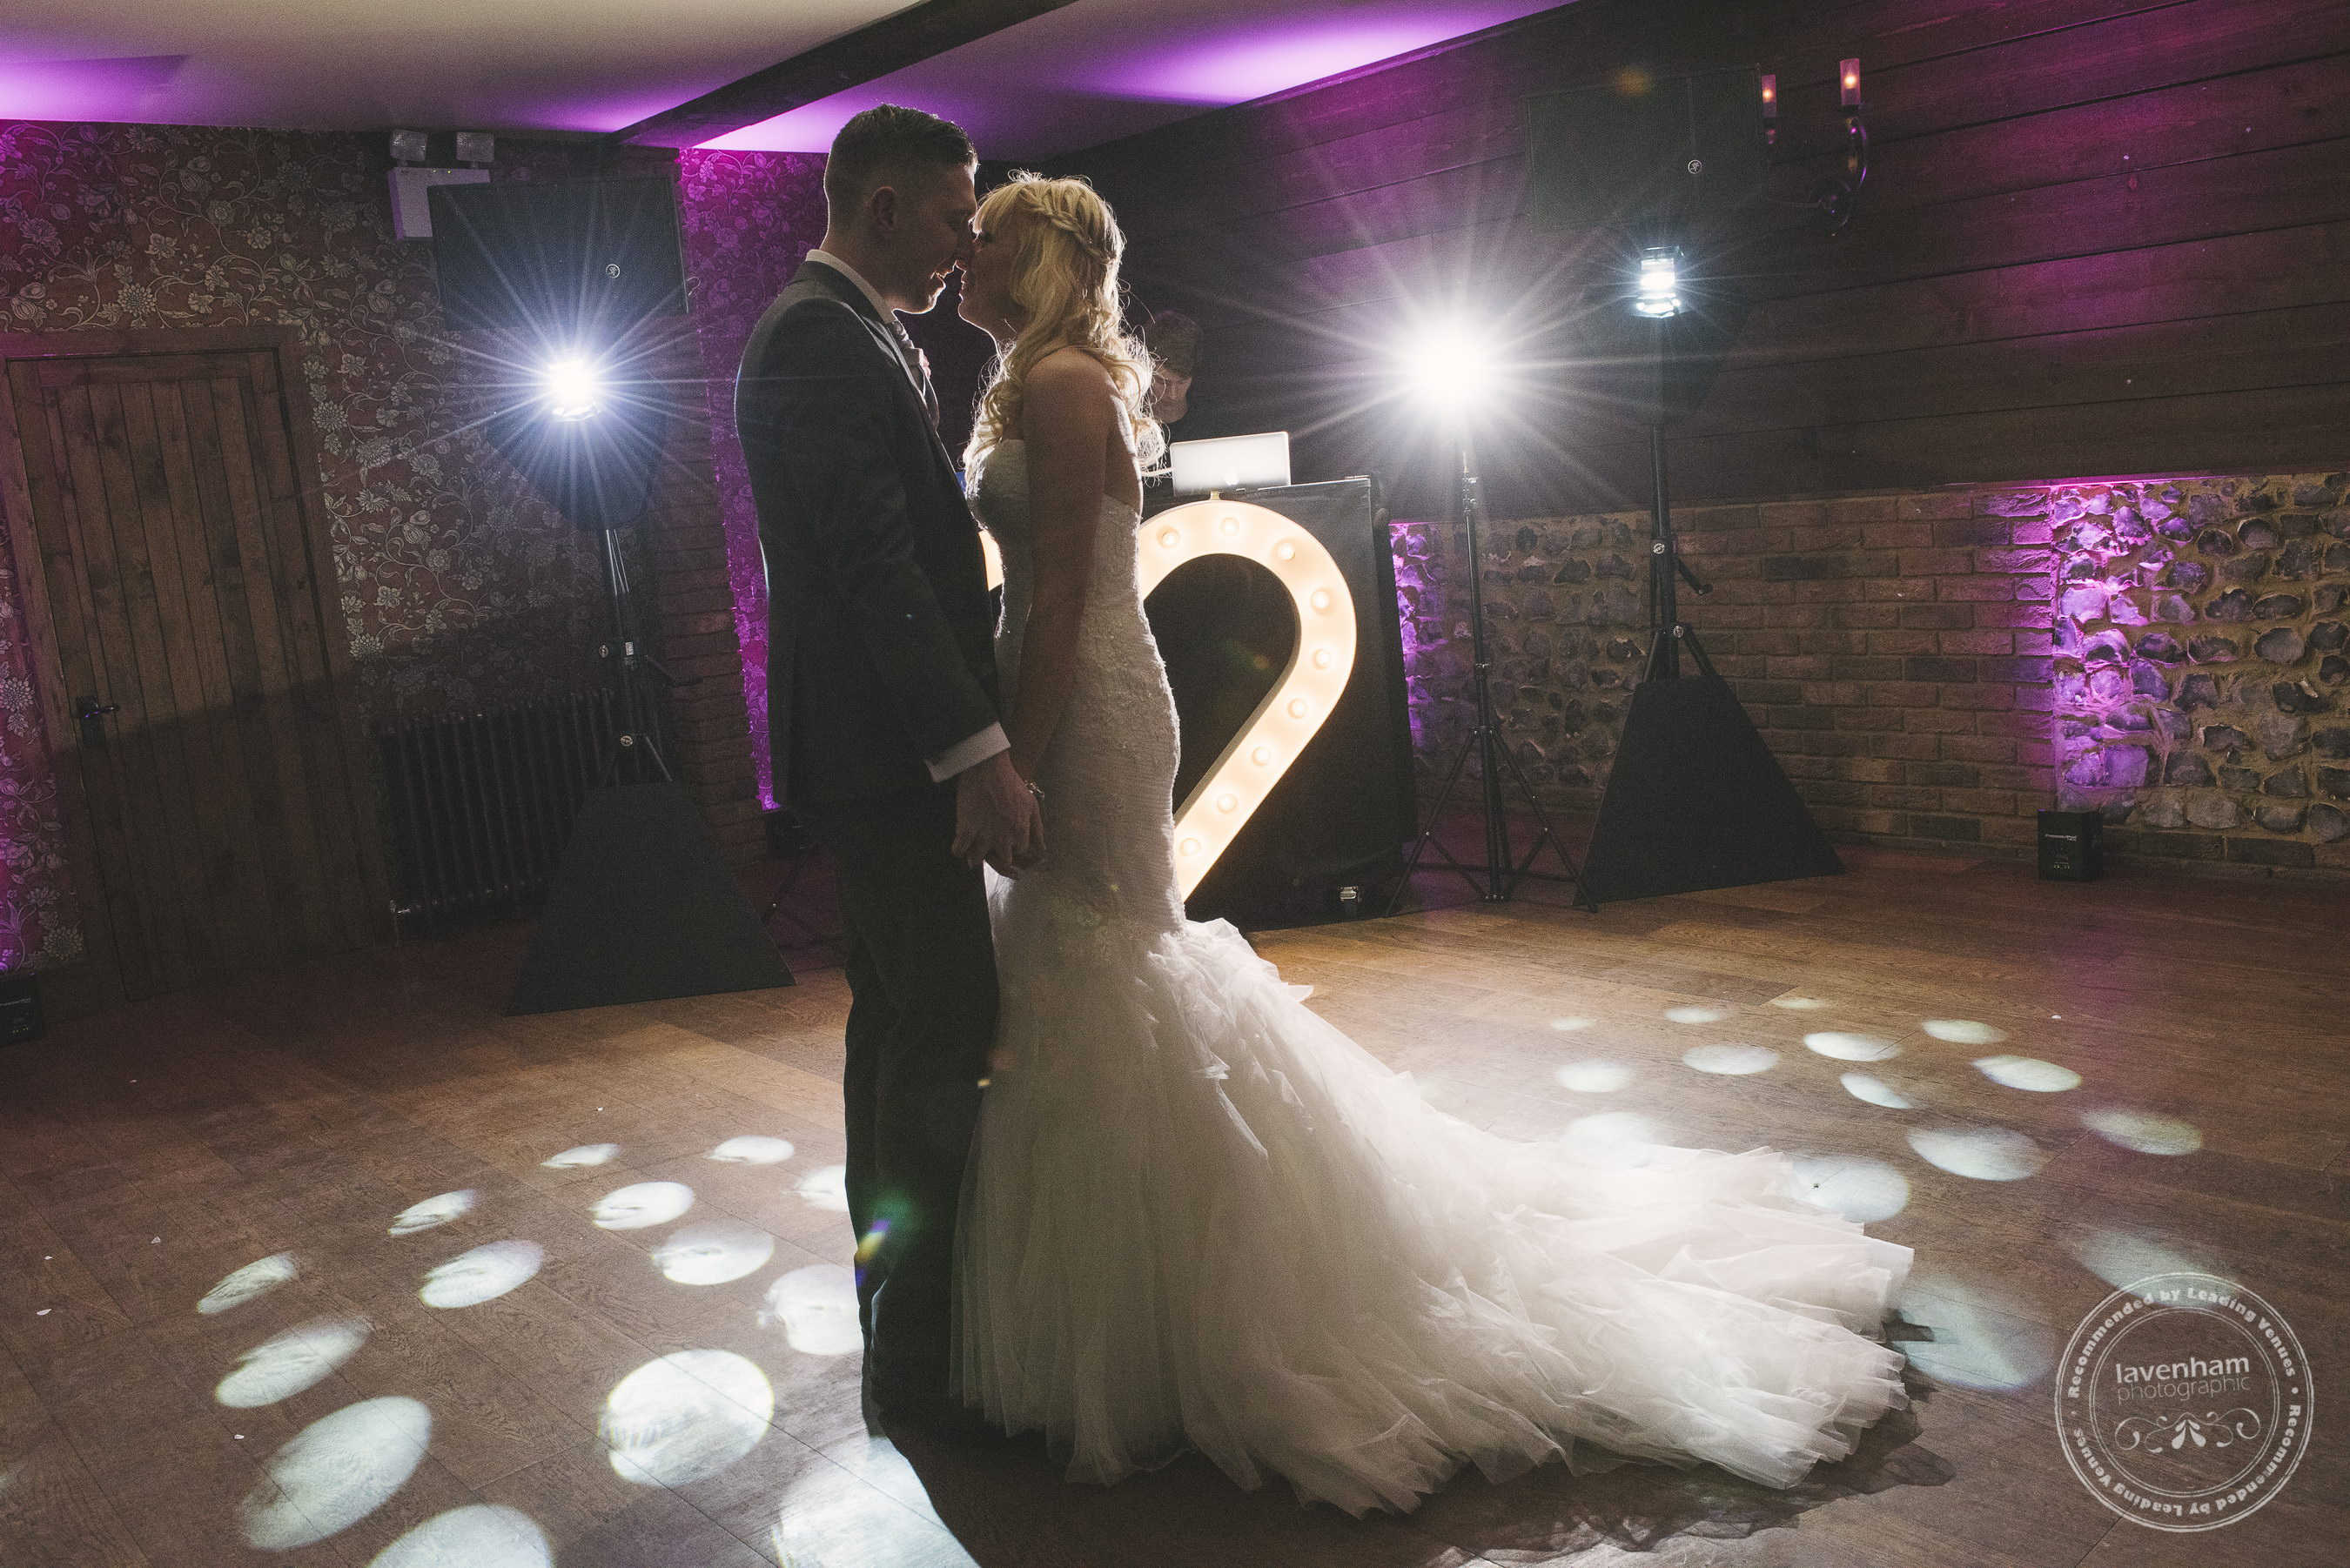 270216 White Hart Yeldham Wedding Photographer 135